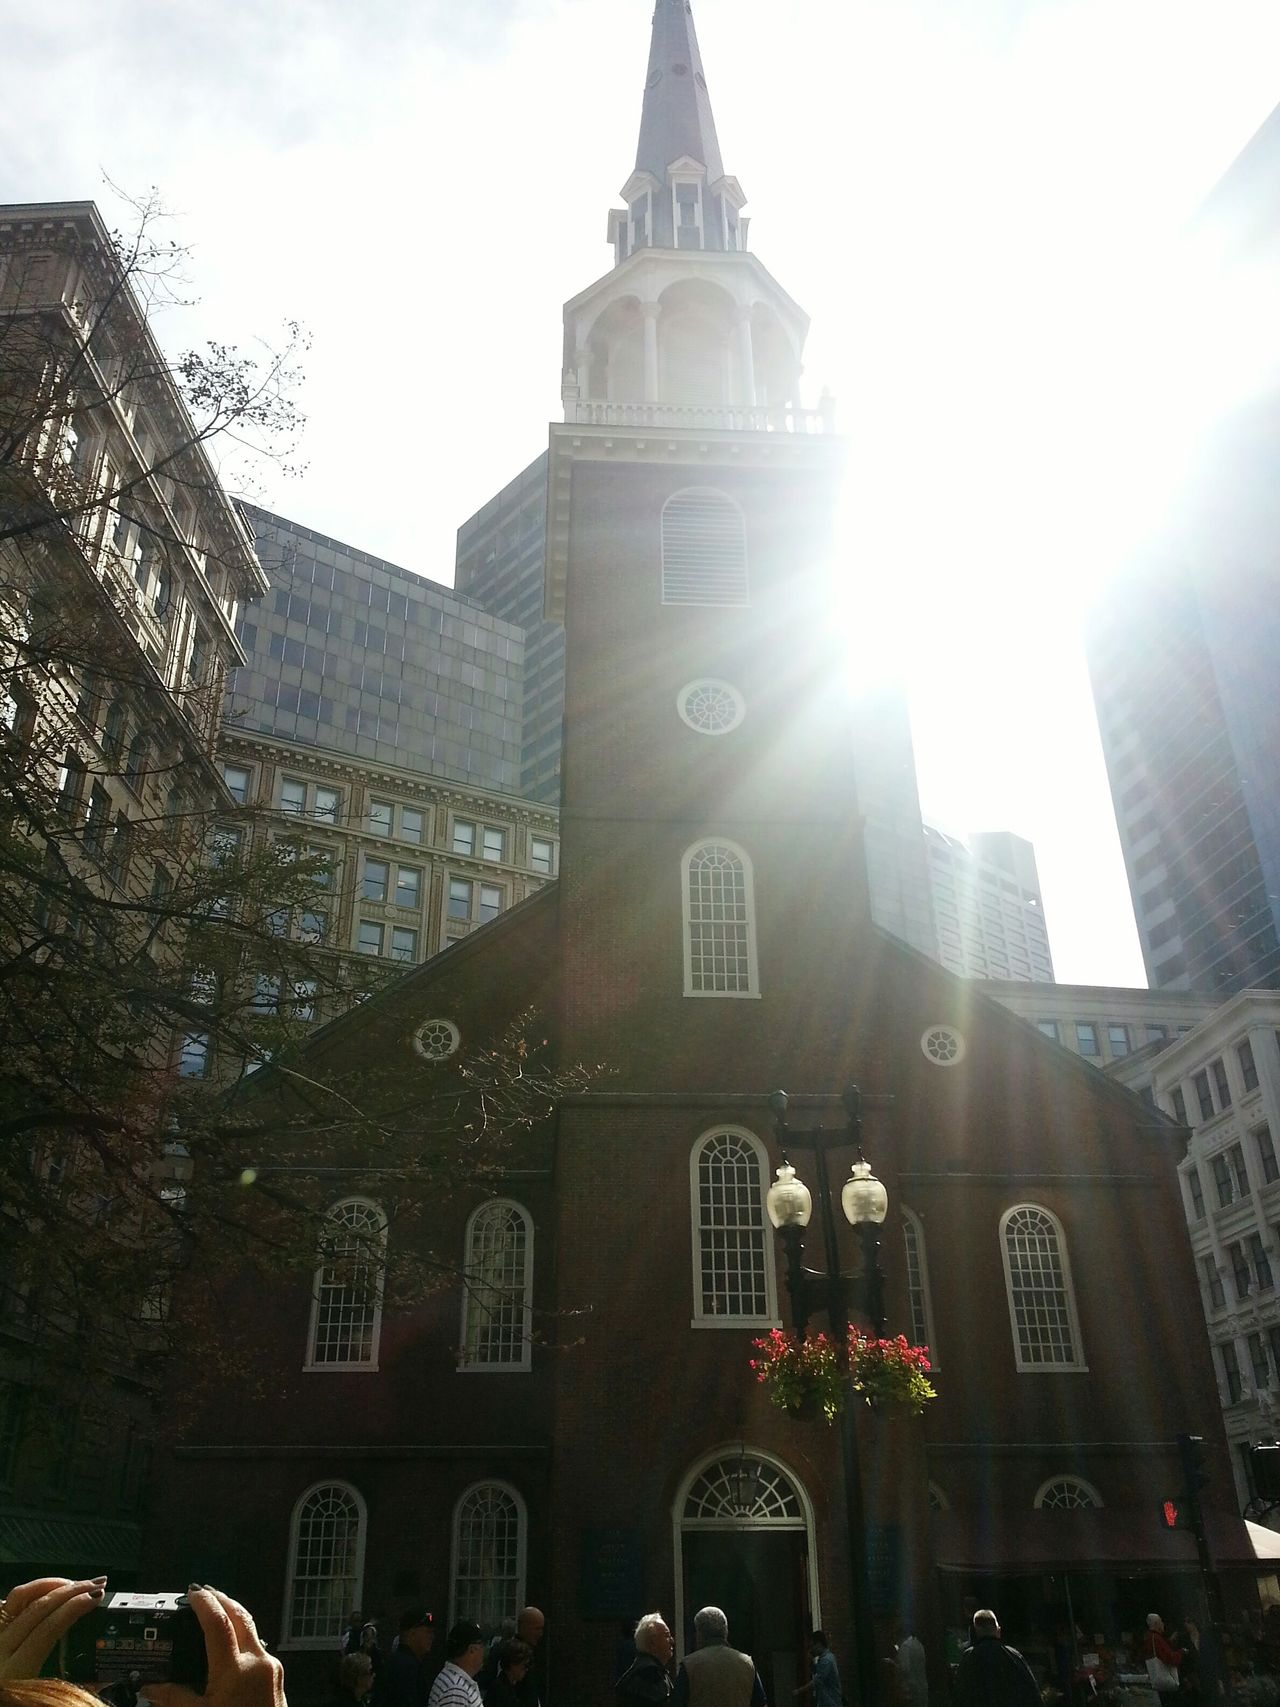 The Freedom Trail Downtown Boston Walking Around Taking Pictures Beautiful Sun Reflection Sun Rays Reflective People In The Streets Hidden Gems  Boston